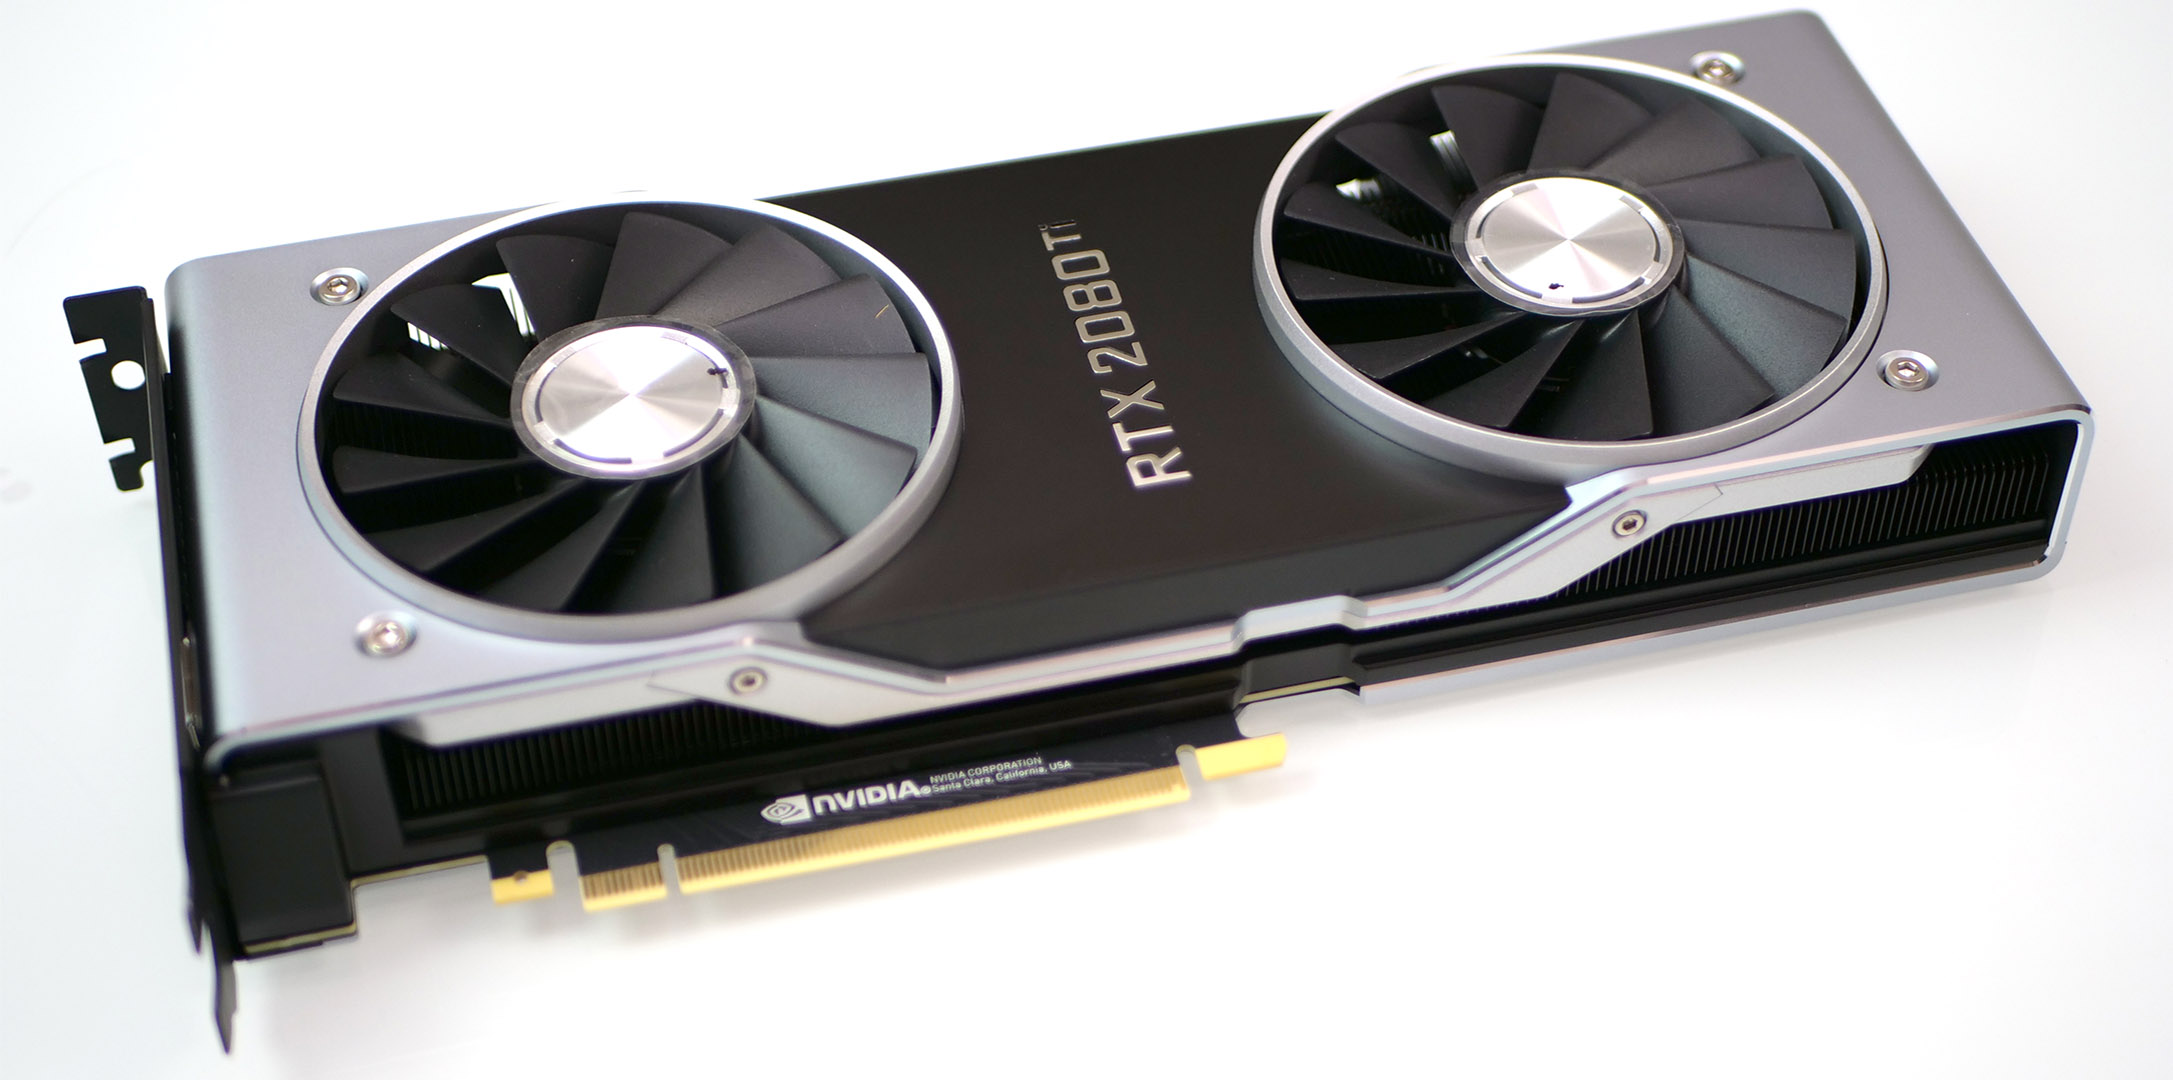 Upgrade to a 1 GB Video Card Add On Item